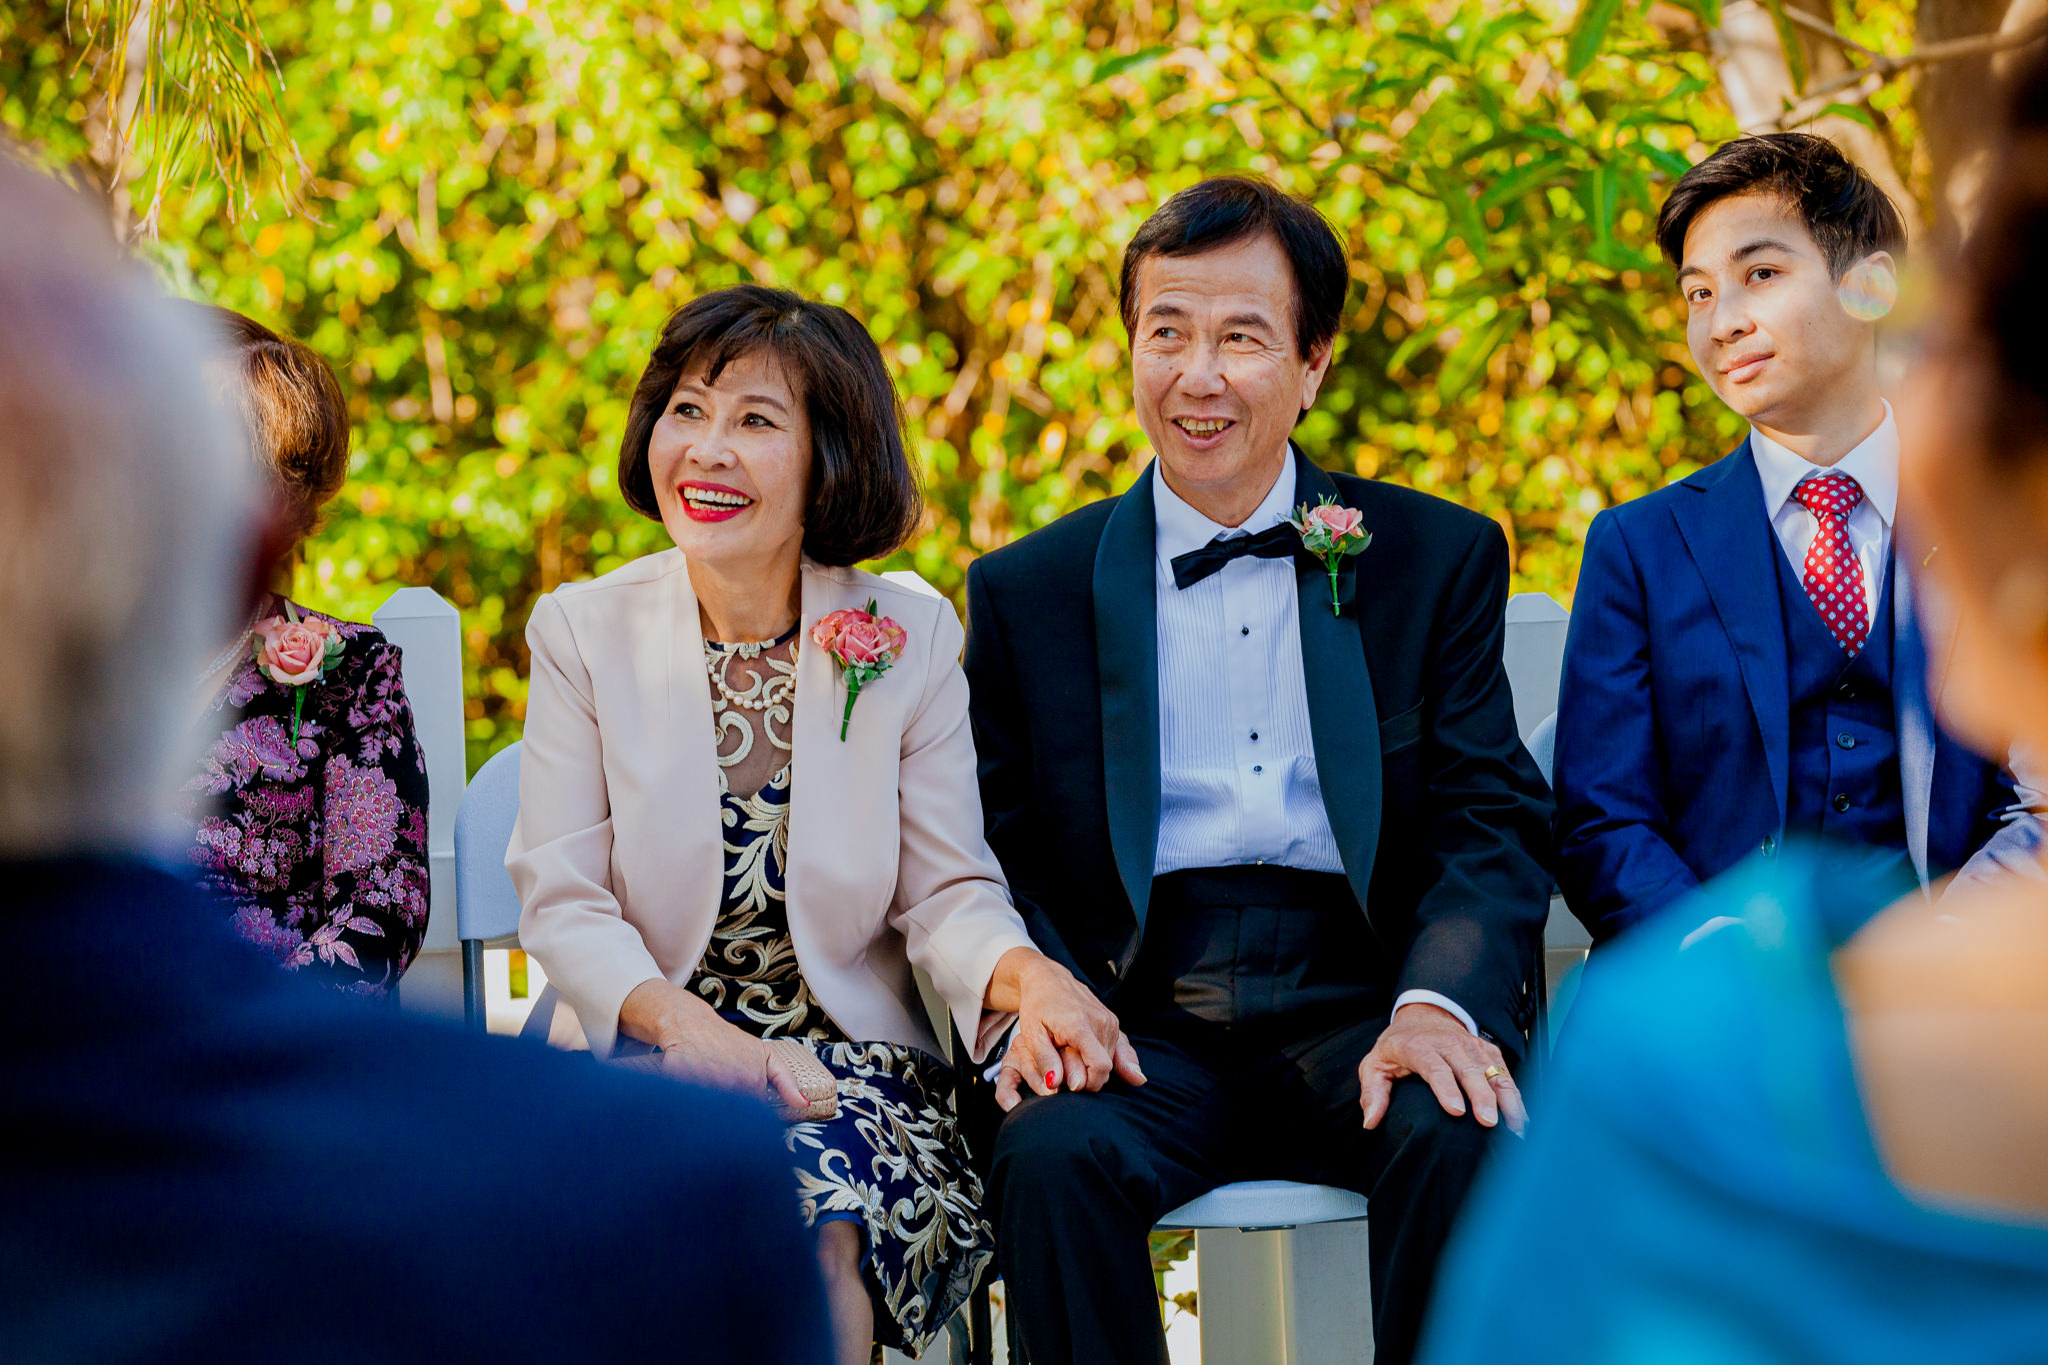 Asian parents smile and laugh as they sit in formal attire